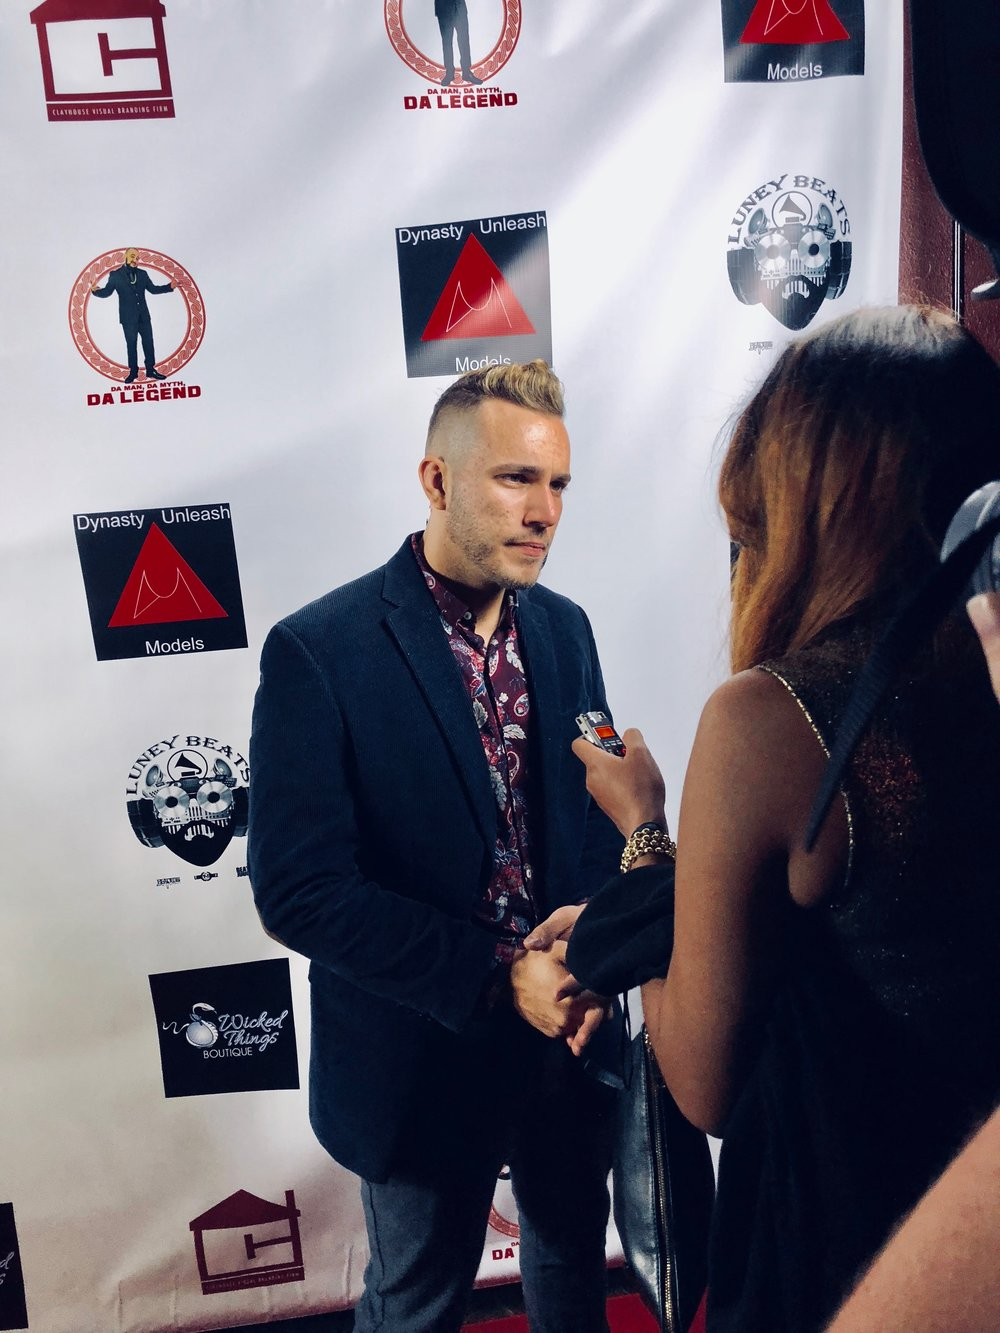 Here we see Lucas Lockwood being interviewed by People's World, sharing the importance of voicing injustice and standing up for those that can't speak up for themselves.   https://www.peoplesworld.org/article/fashion-label-puts-domestic-violence-center-stage-at-naacp-image-awards/